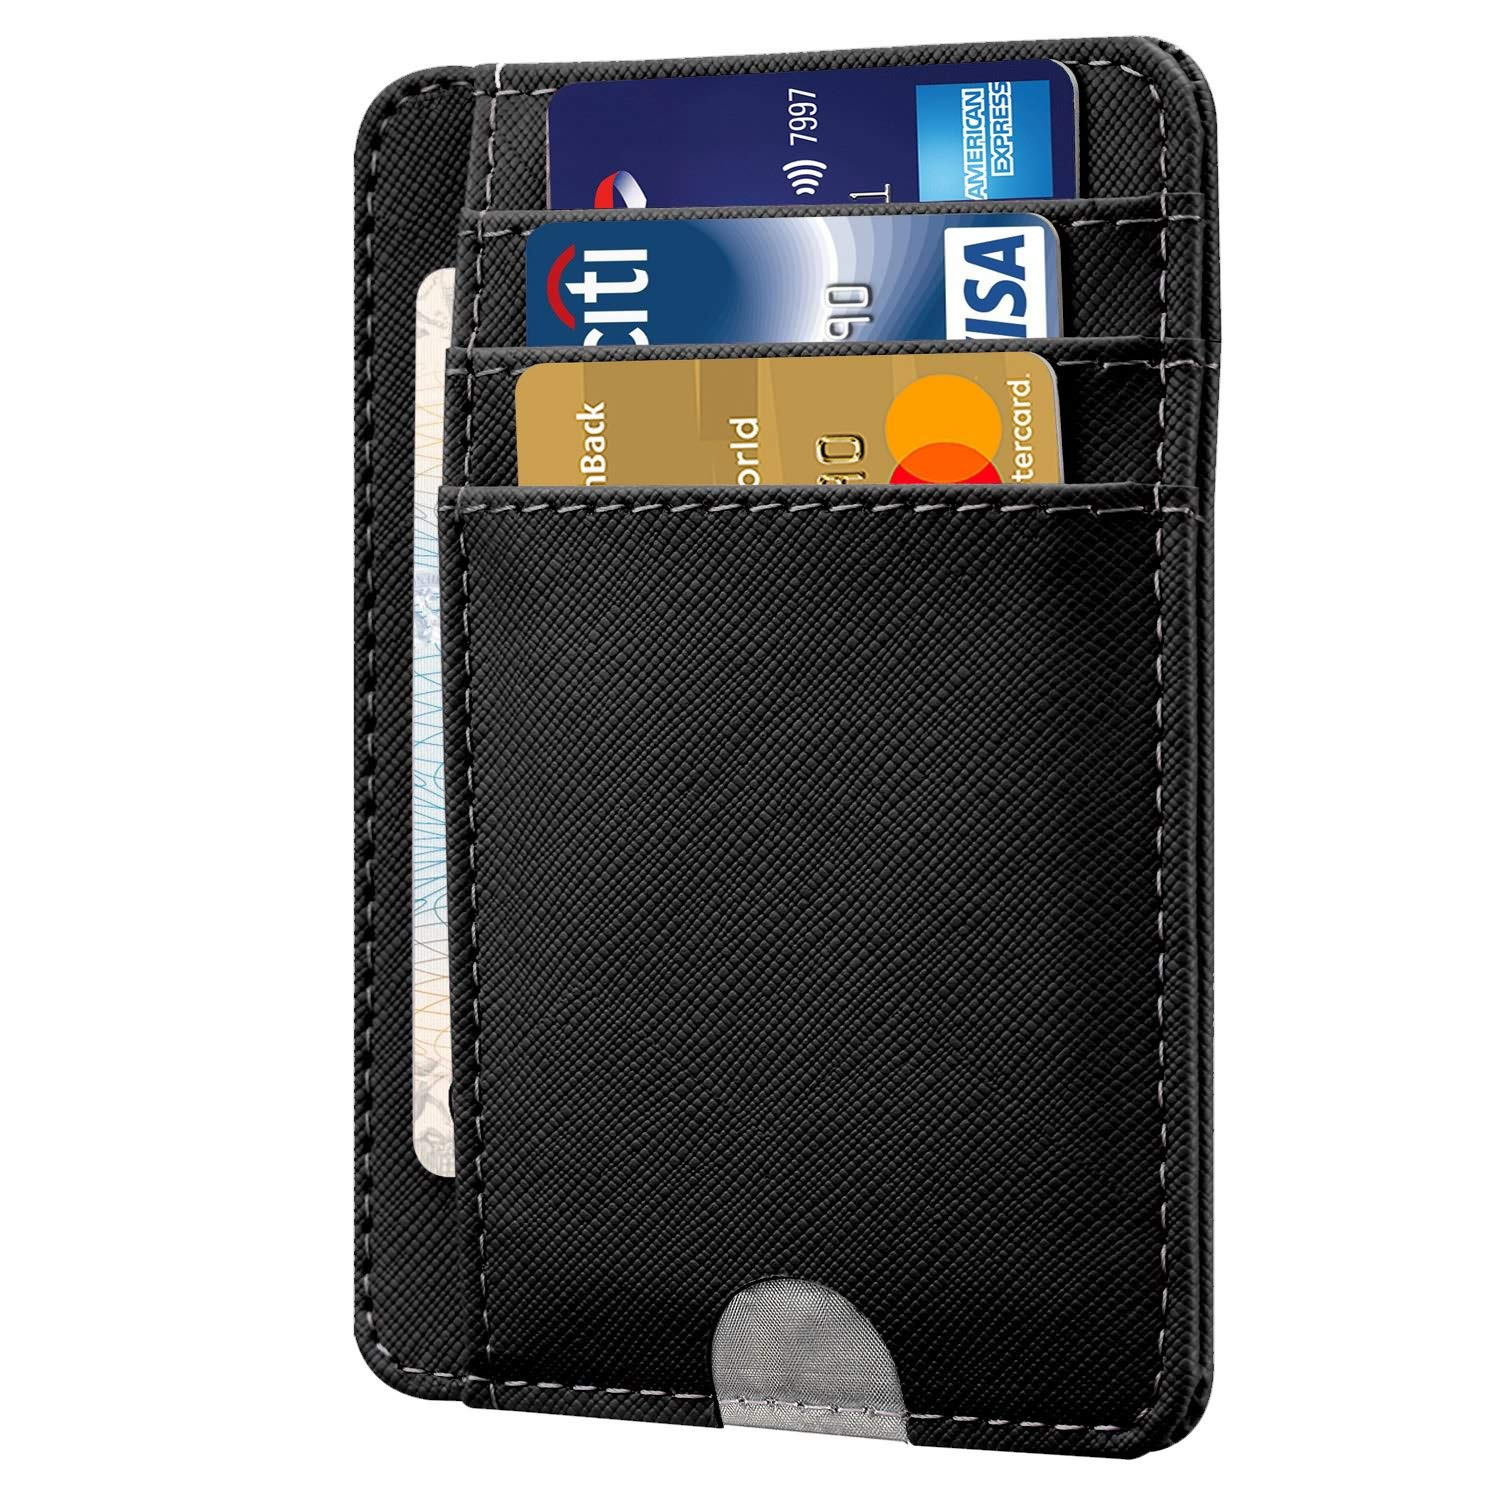 HOTCOOL Front Pocket Minimalist Leather With RFID Card Holder Wallet, Cross Navy Blue